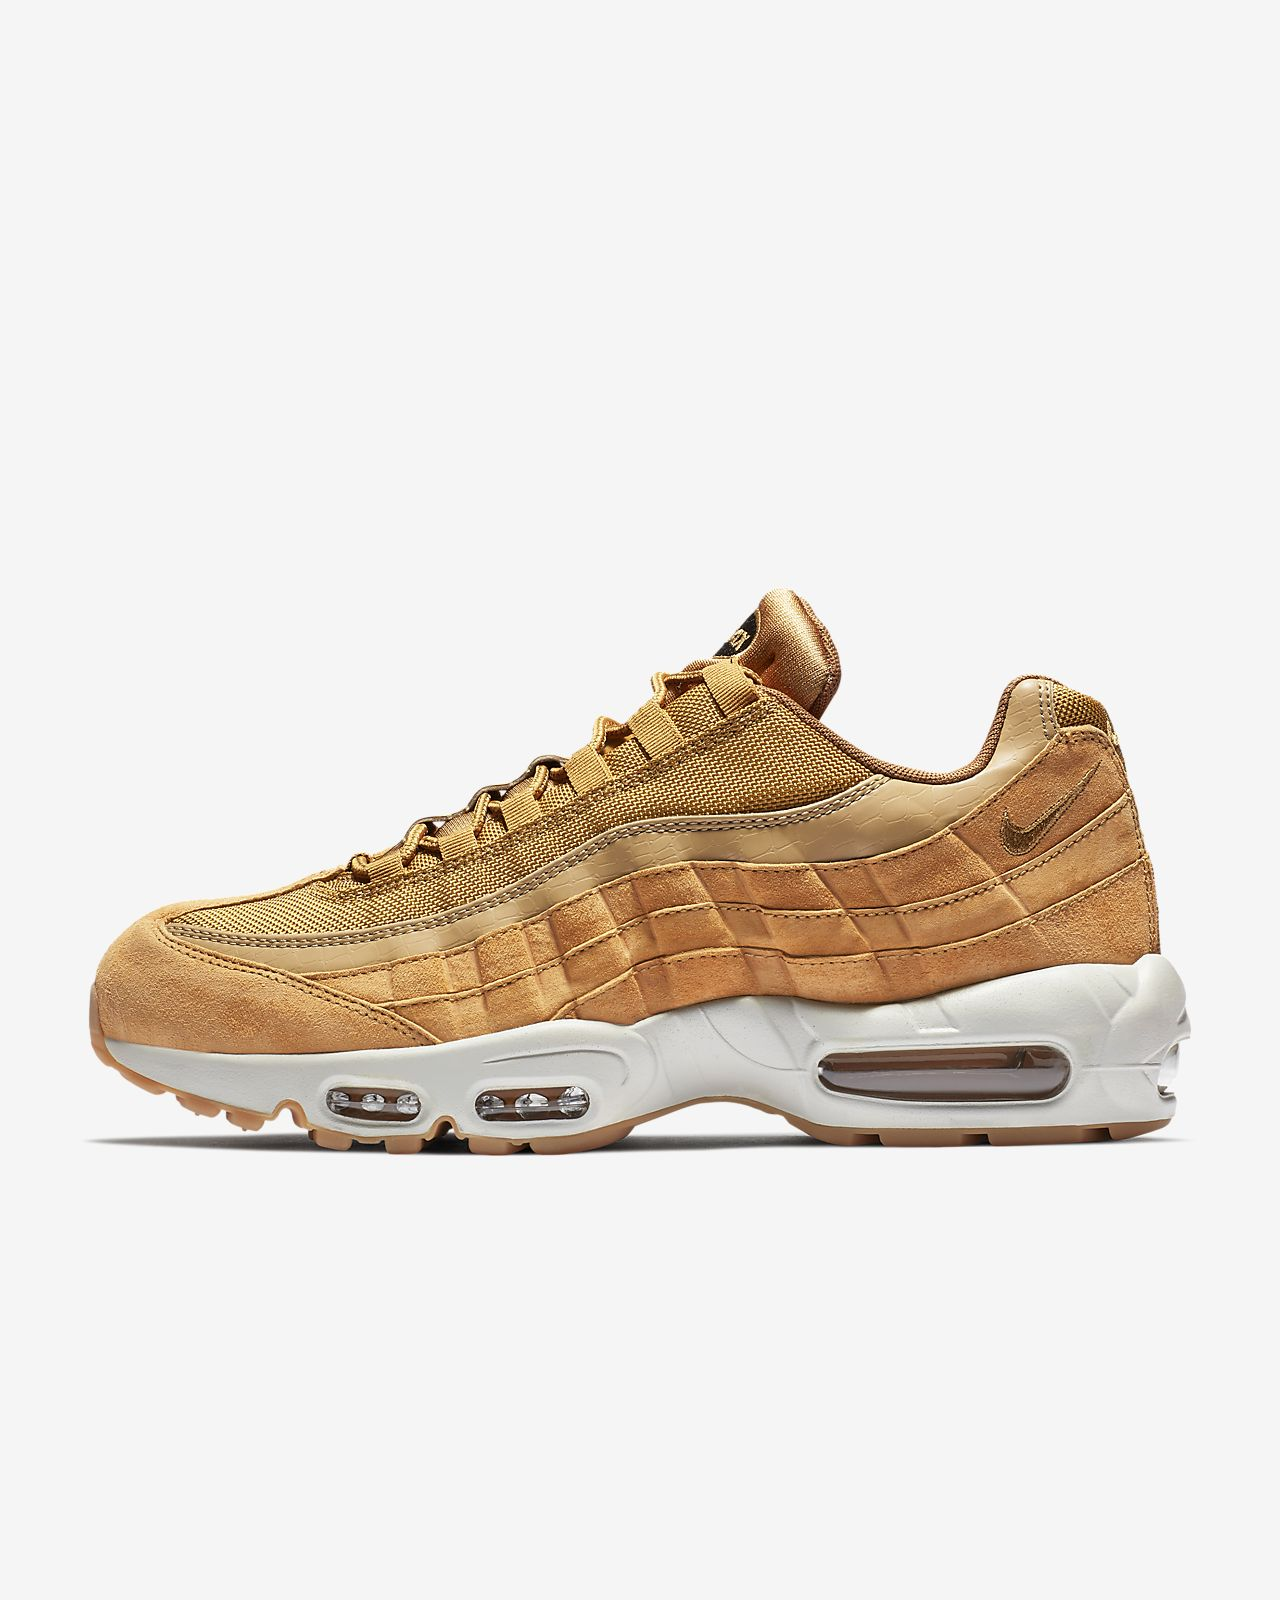 Max Pour Nike Chaussure 95 Be Homme Se Air 71x8O